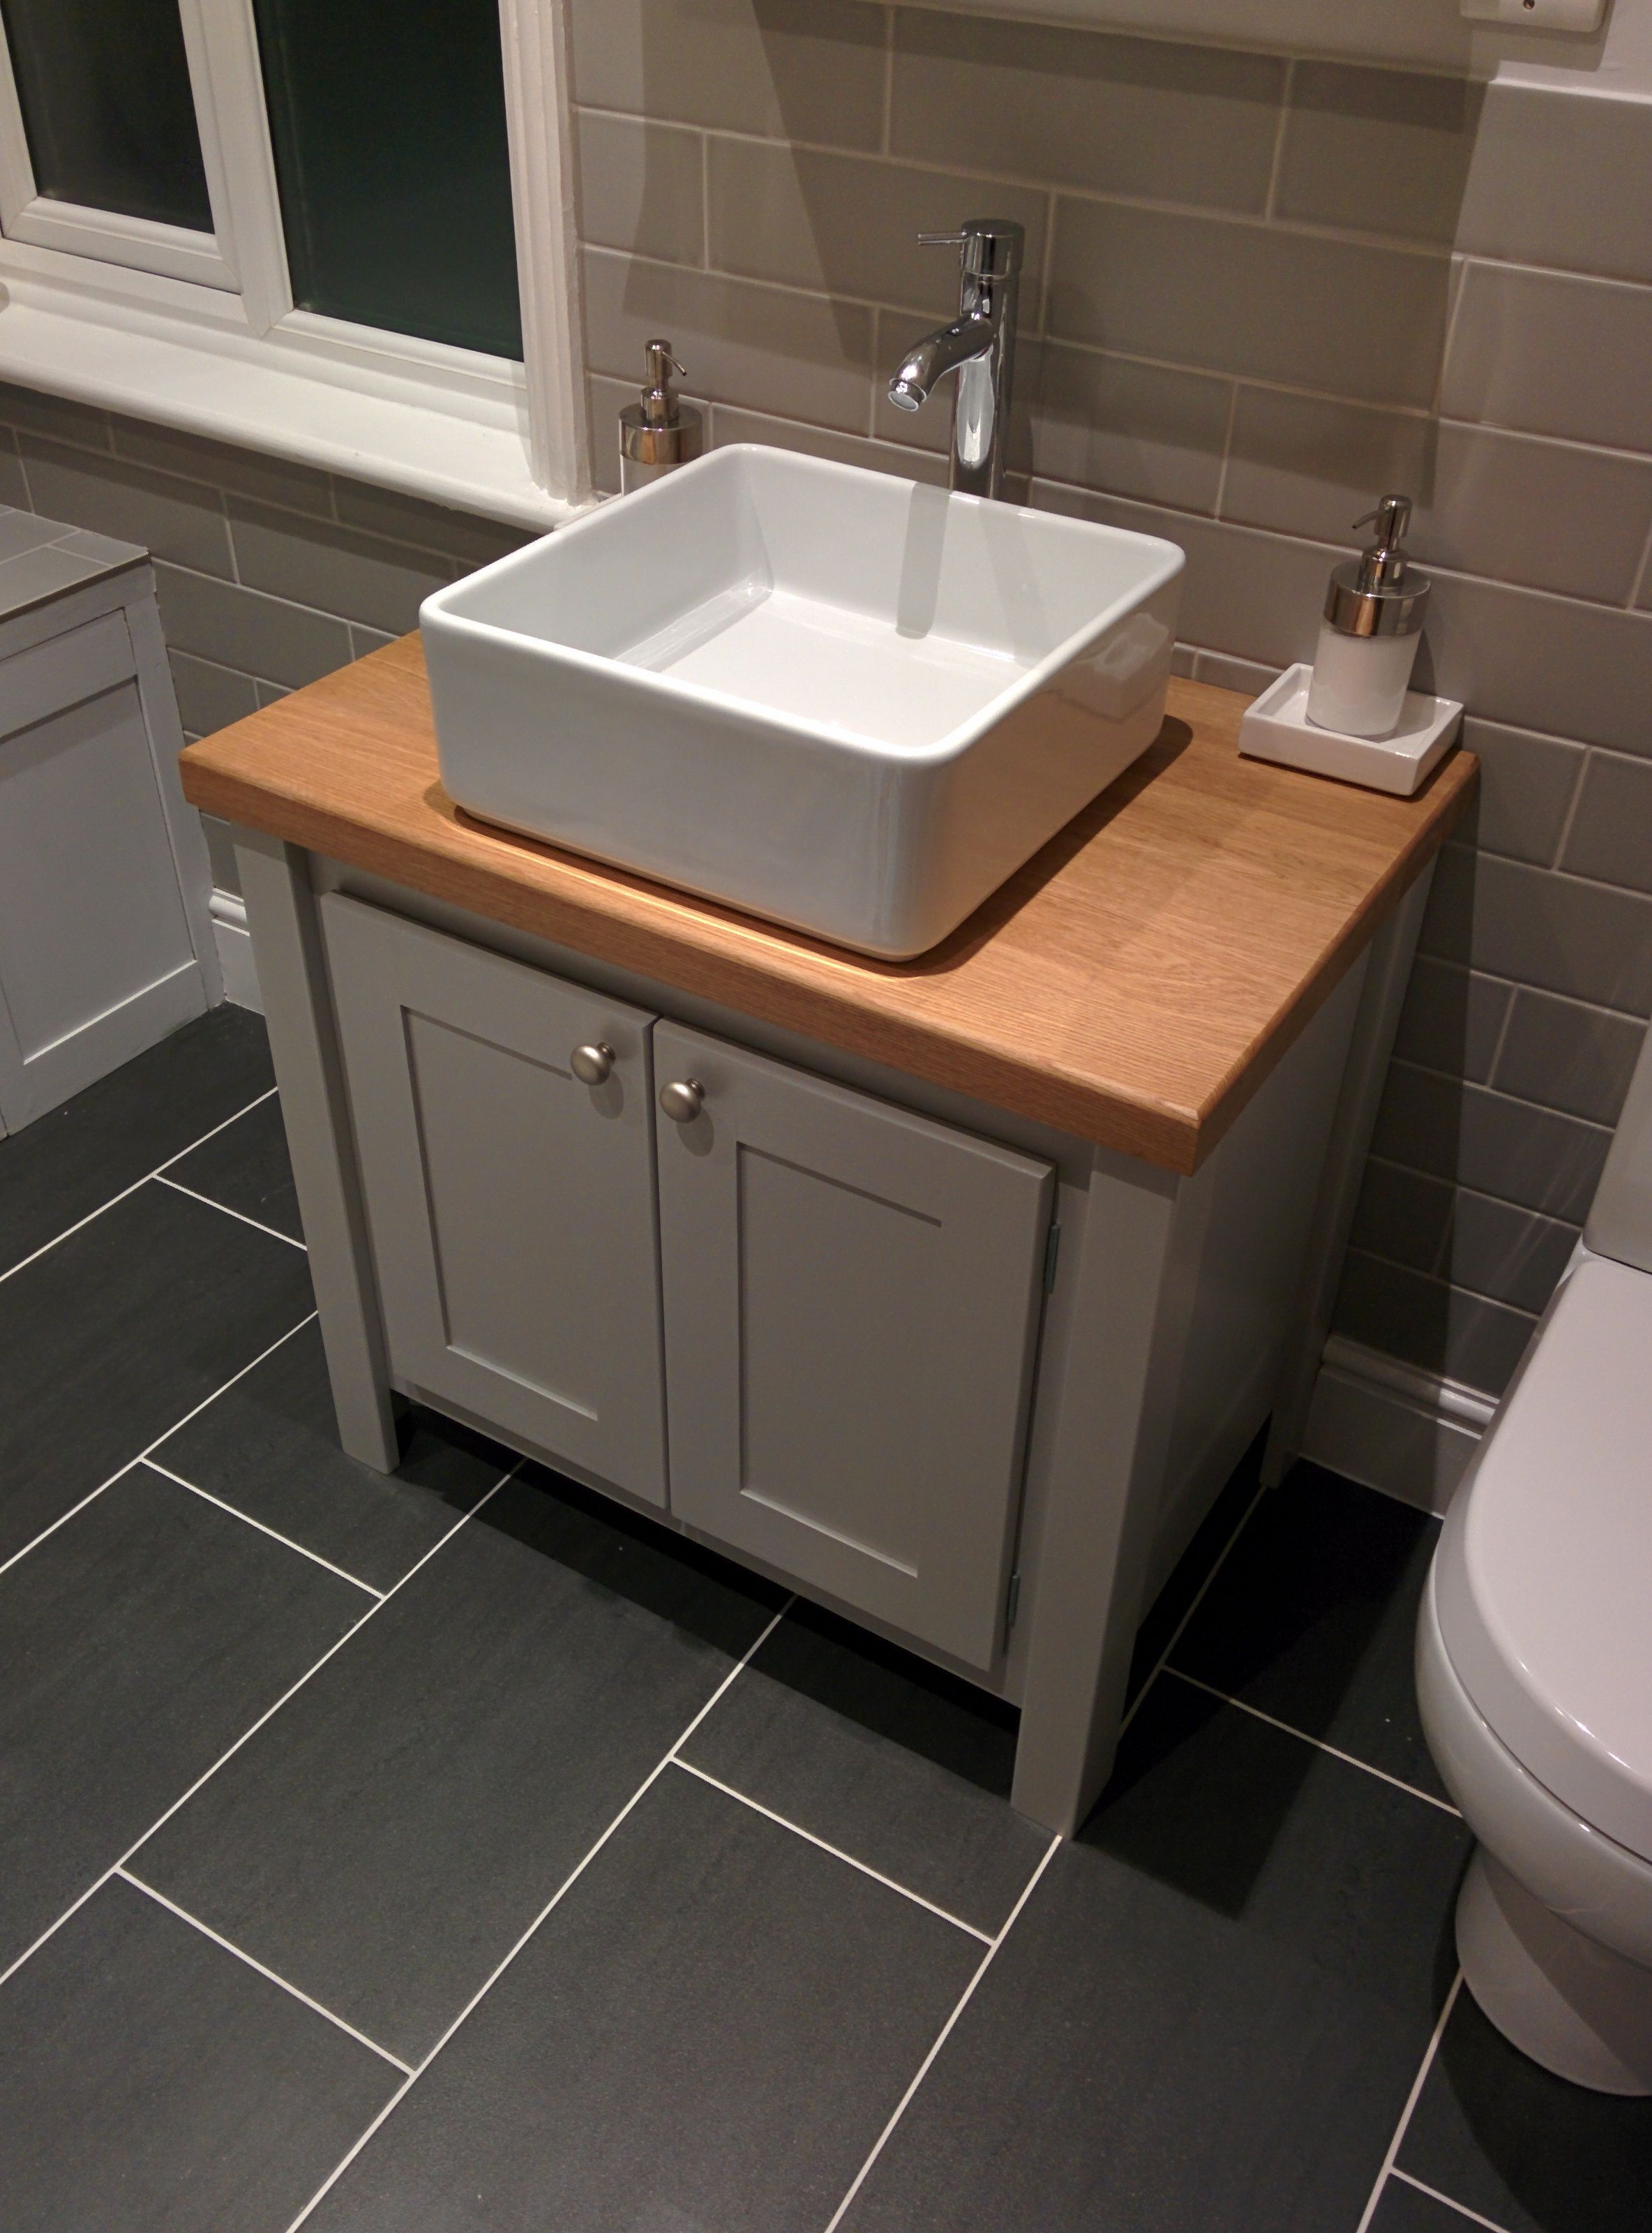 Manor house grey with a solid oak top vanity unit All our vanity